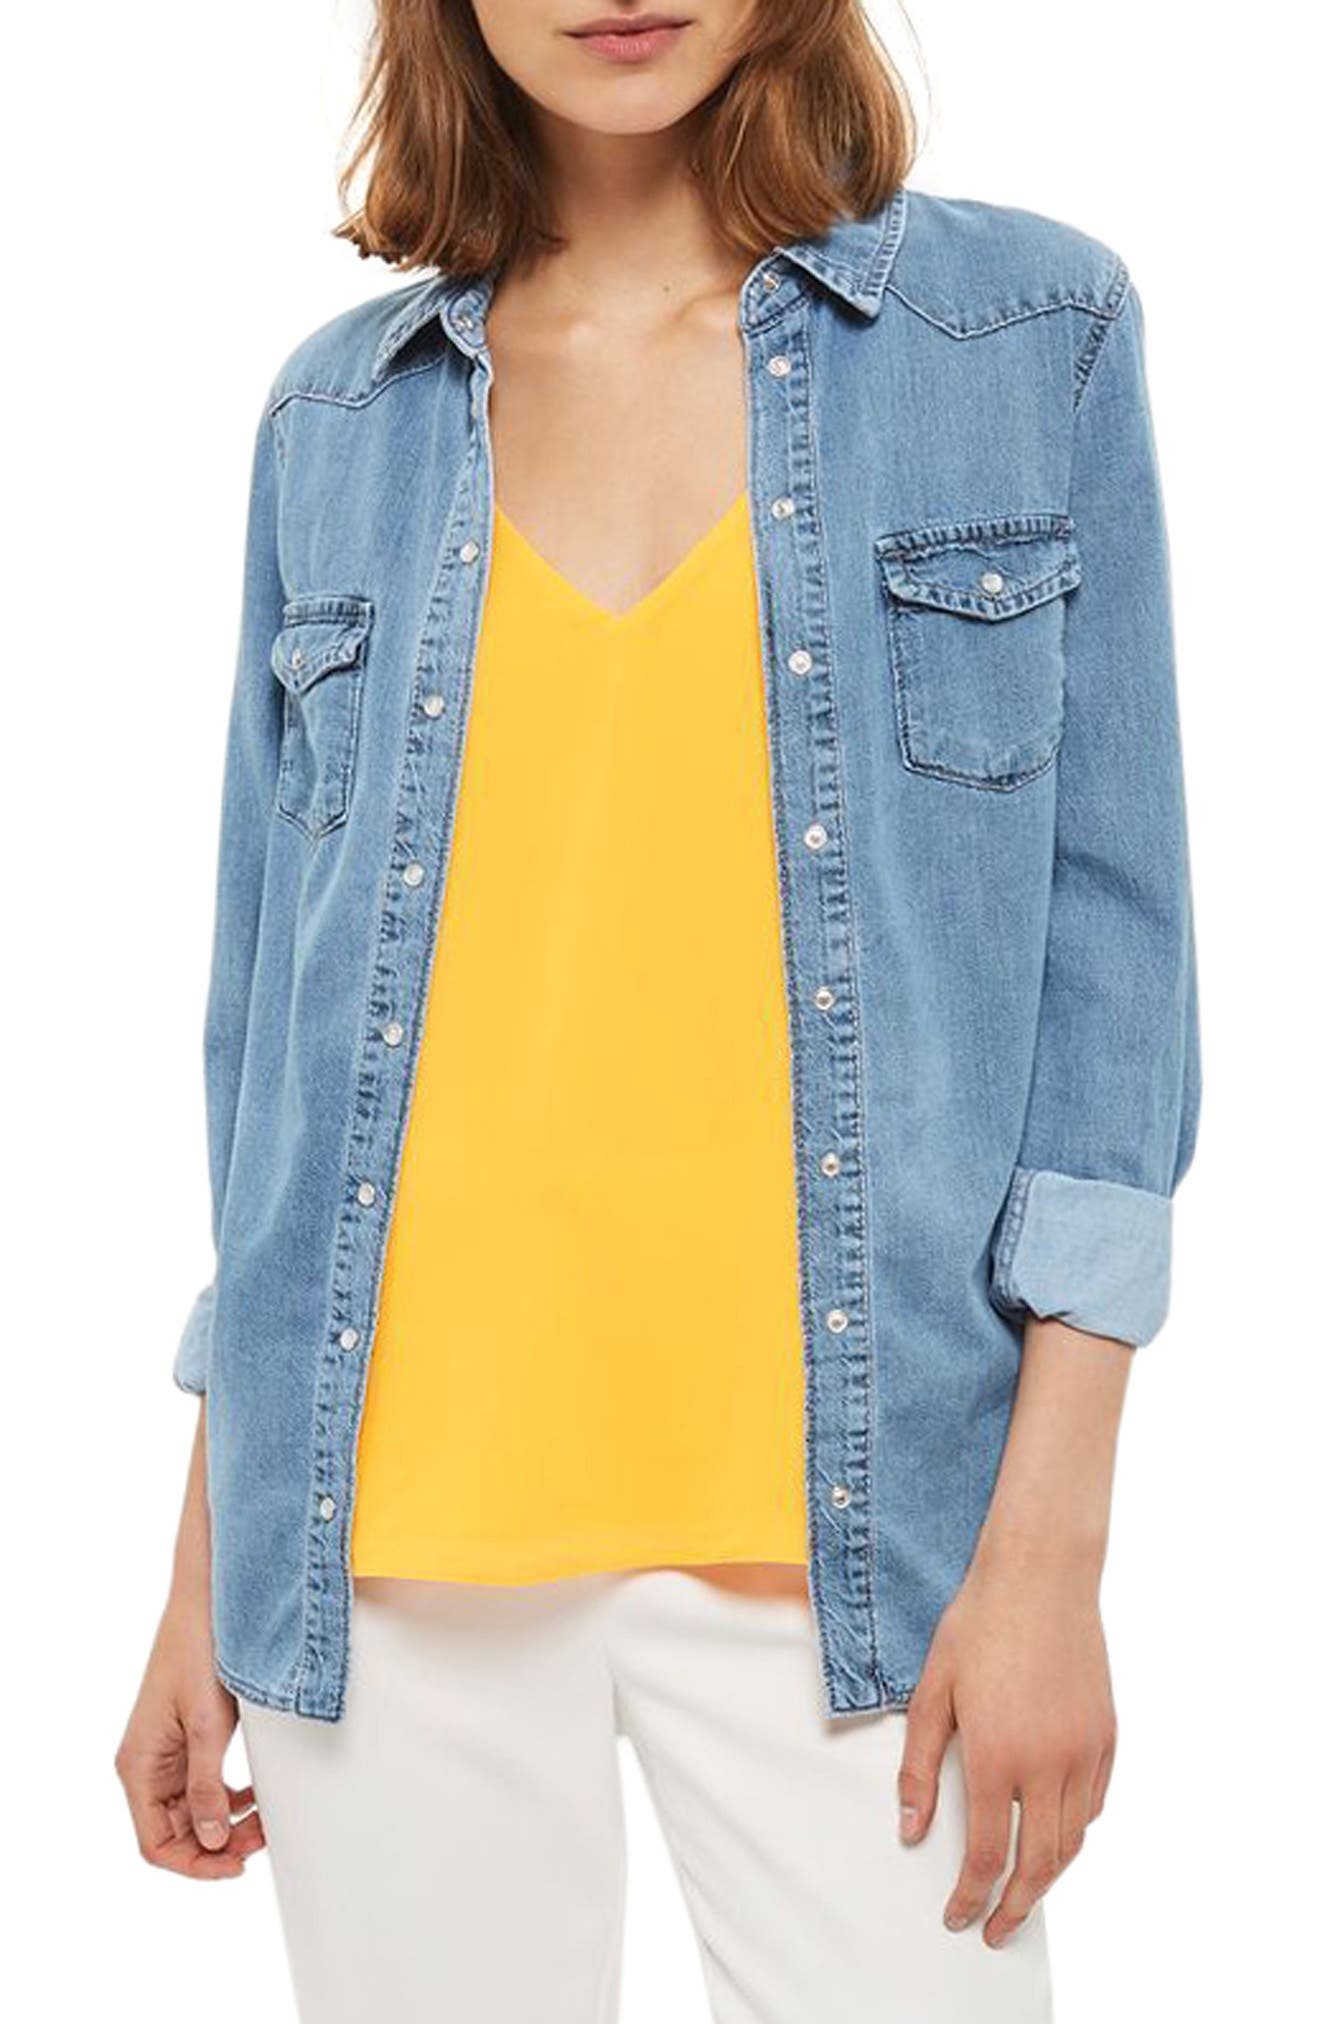 Topshop Fitted Western Shirt